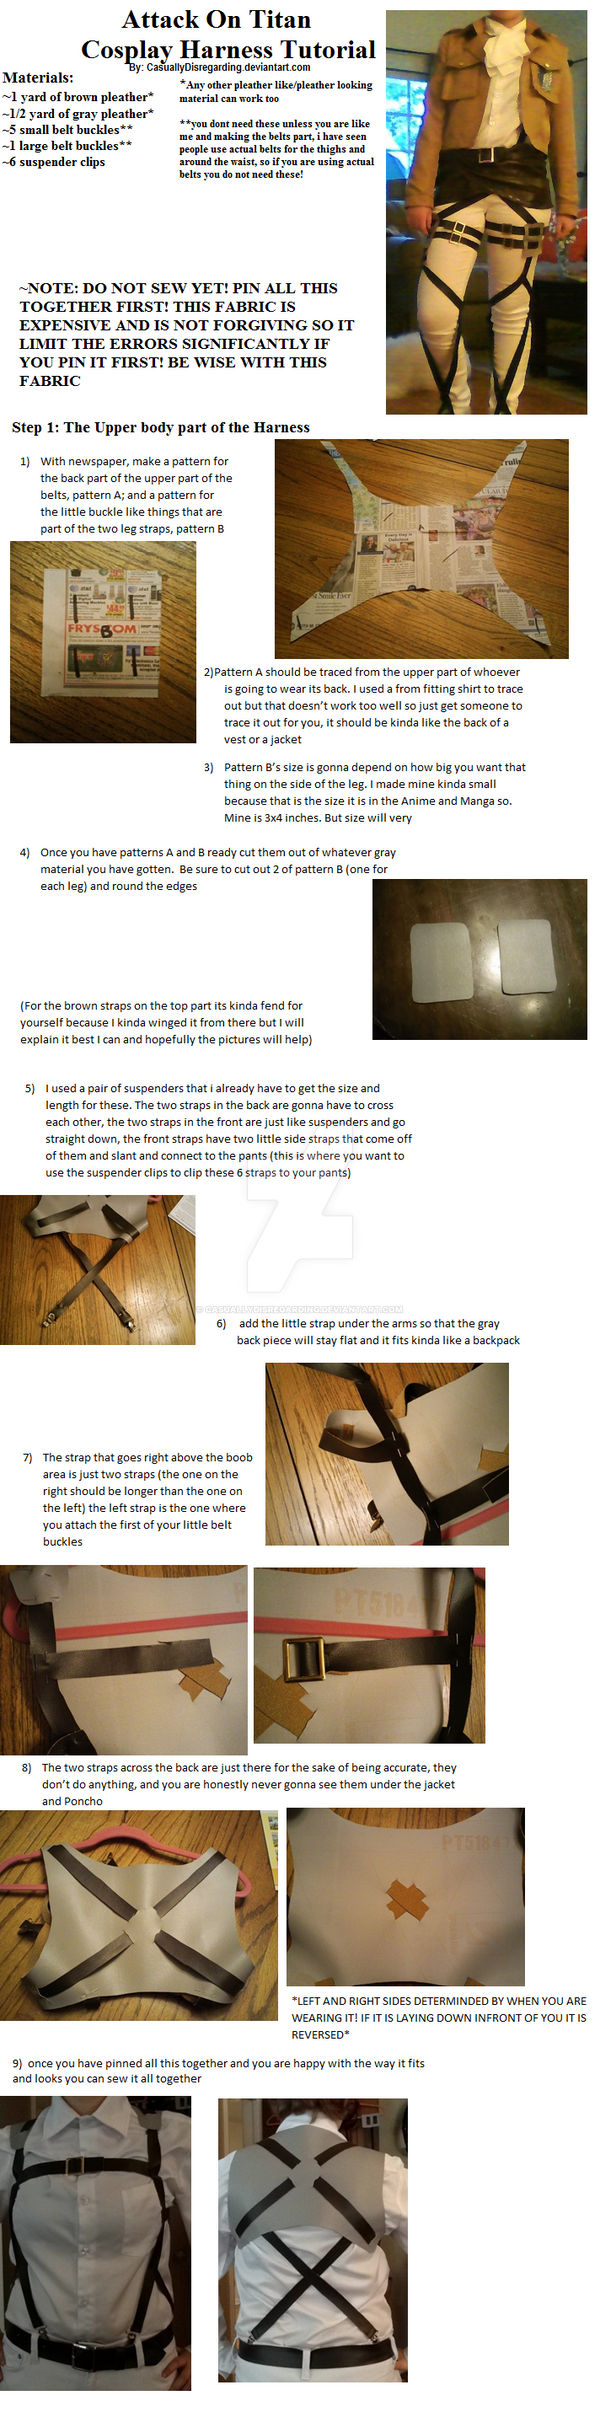 Attack on Titan Harness Tutorial Part 1